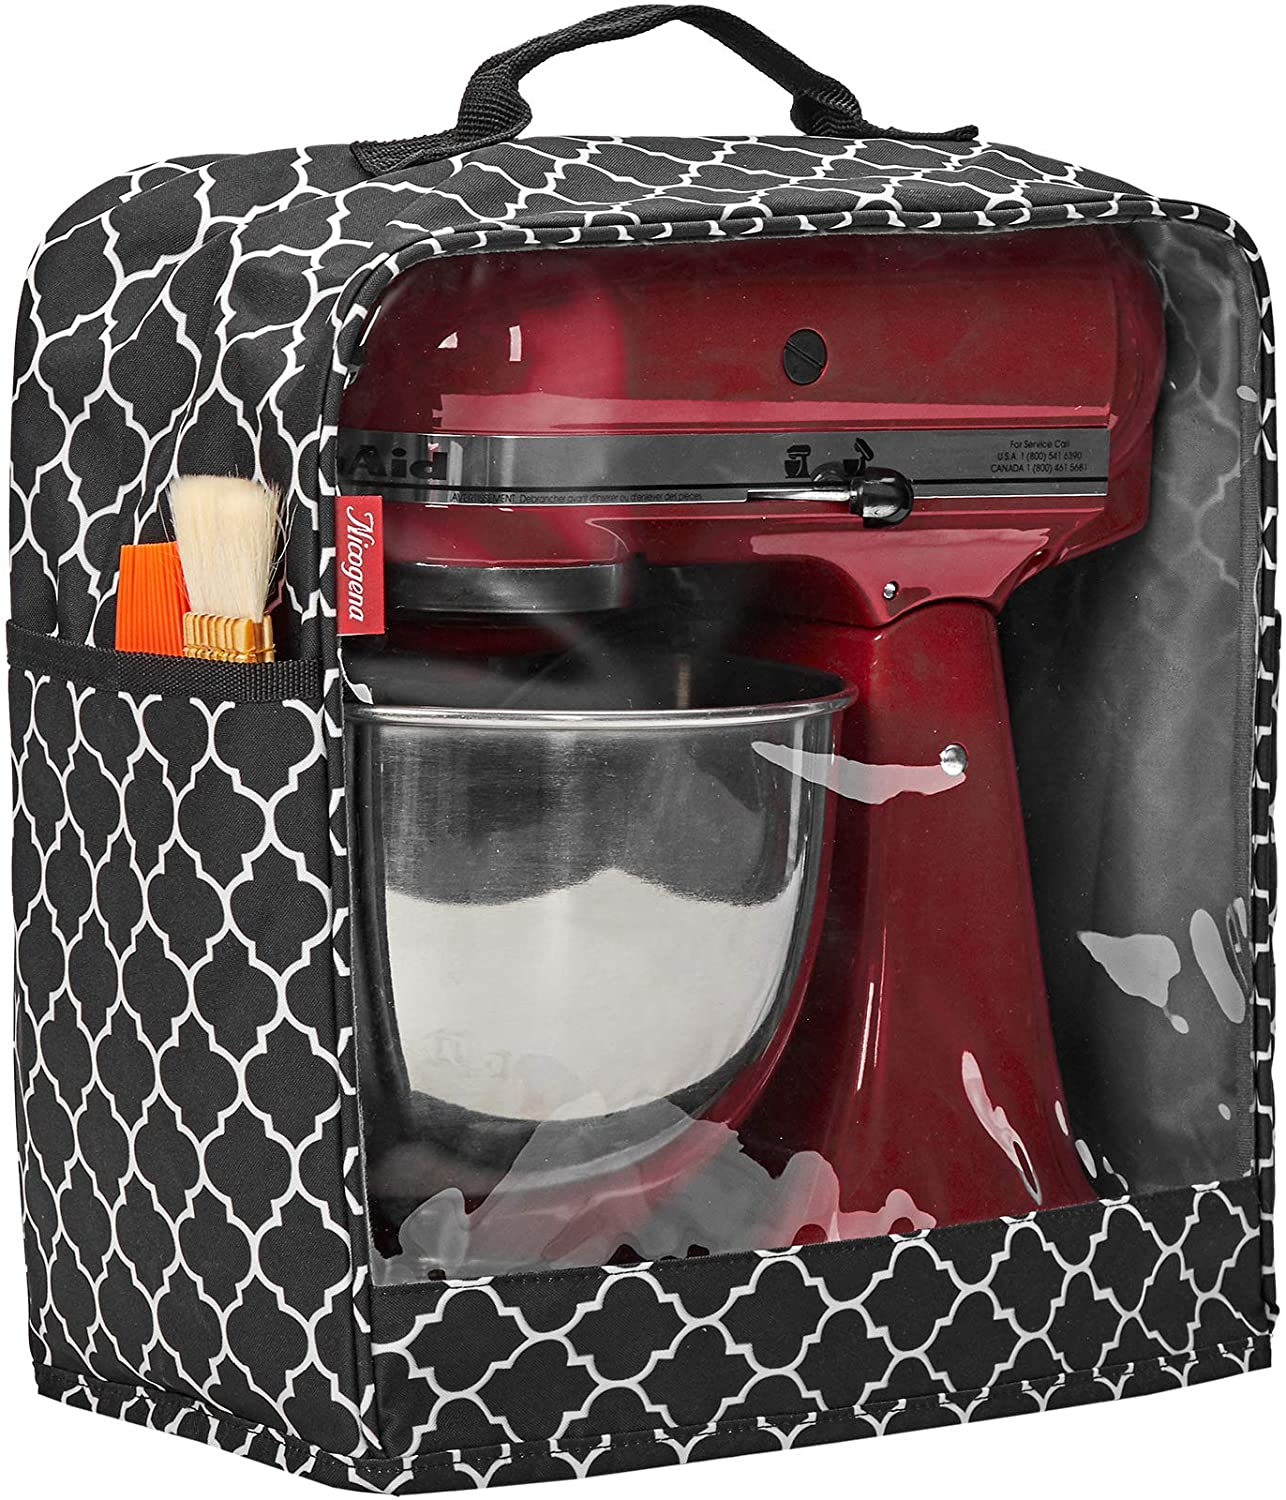 NICOGENA Visible Stand Mixer Dust Cover with Pockets Compatible with KitchenAid Tilt Head 4.5-5 Quart, Lantern Black